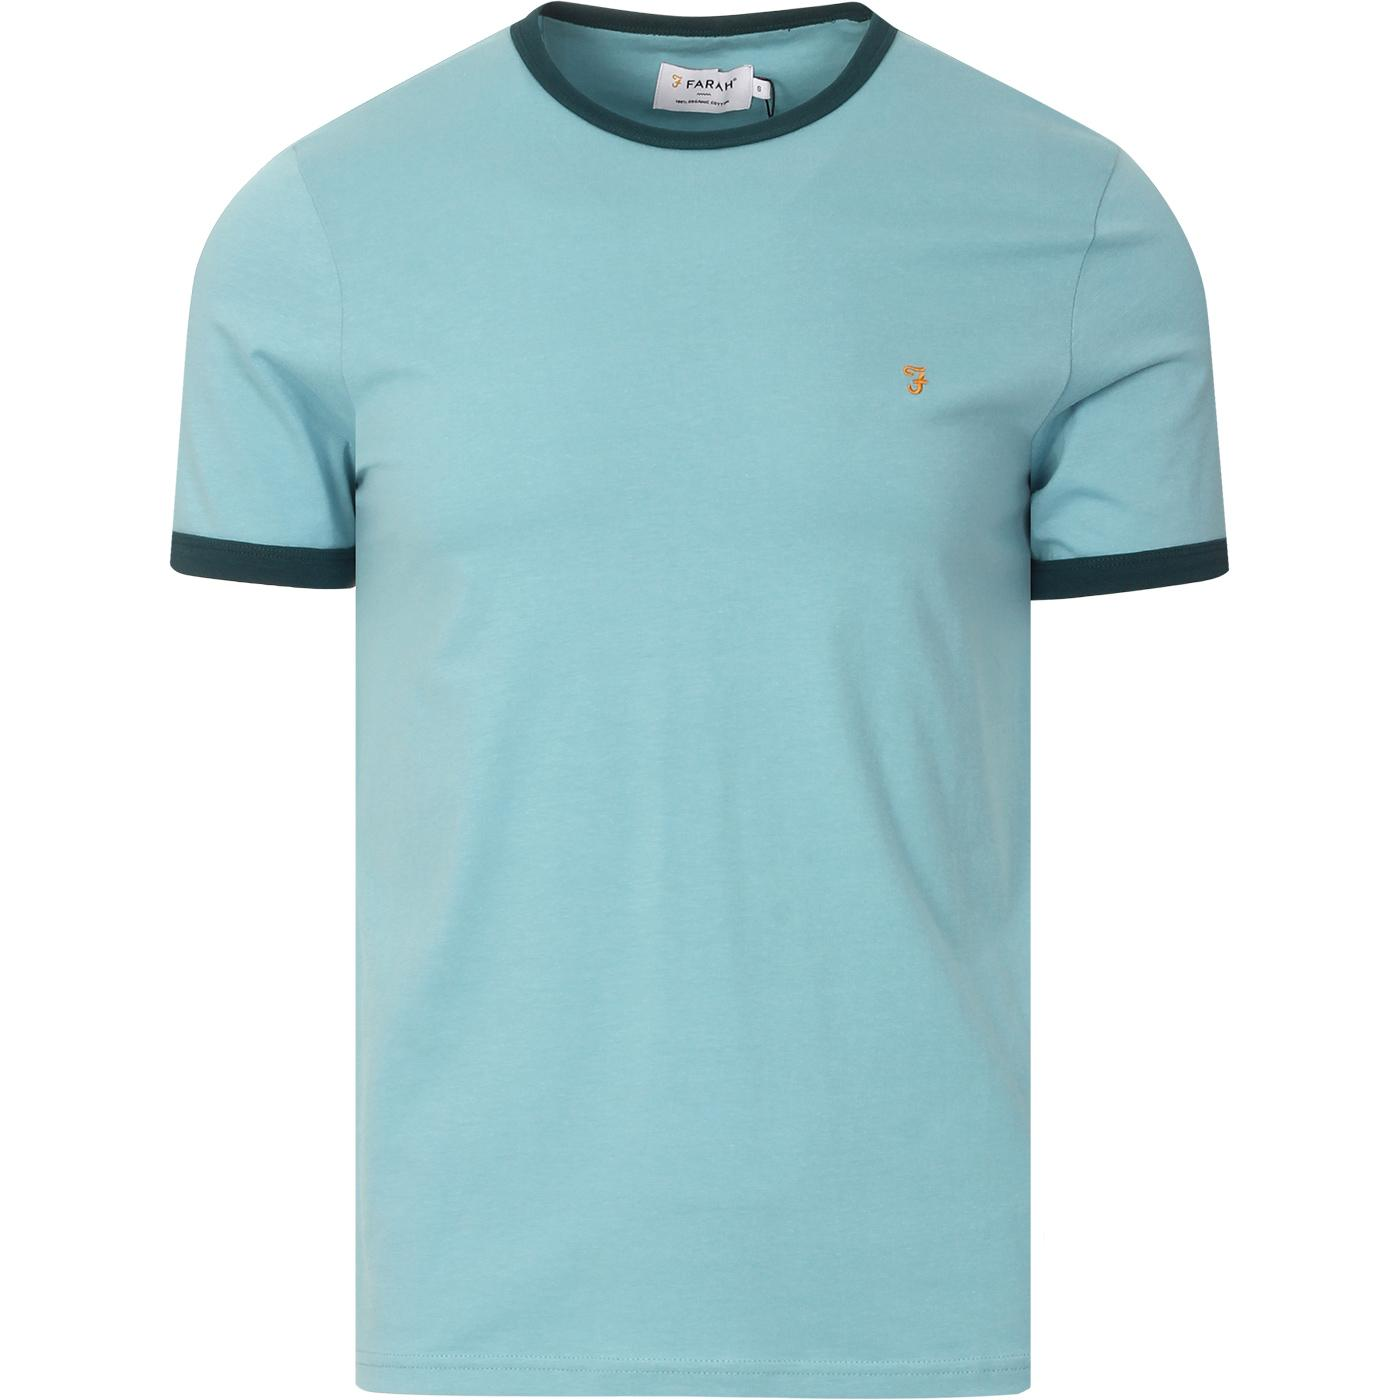 Groves FARAH Retro Mod Ringer Tee (Reef Green)